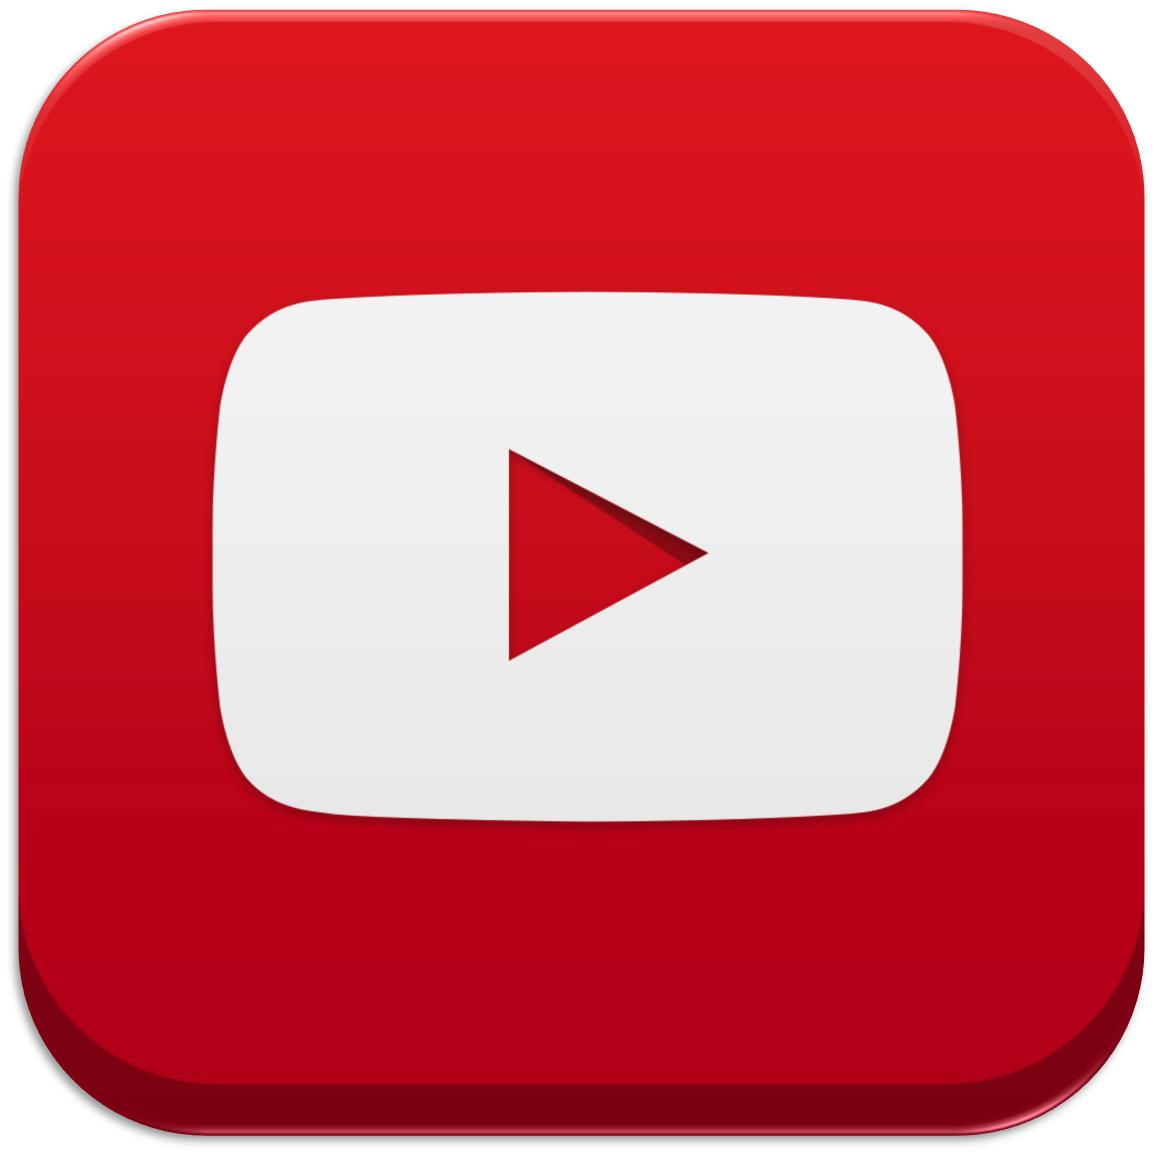 youtube transparent, youtube play button png download clip art #31809